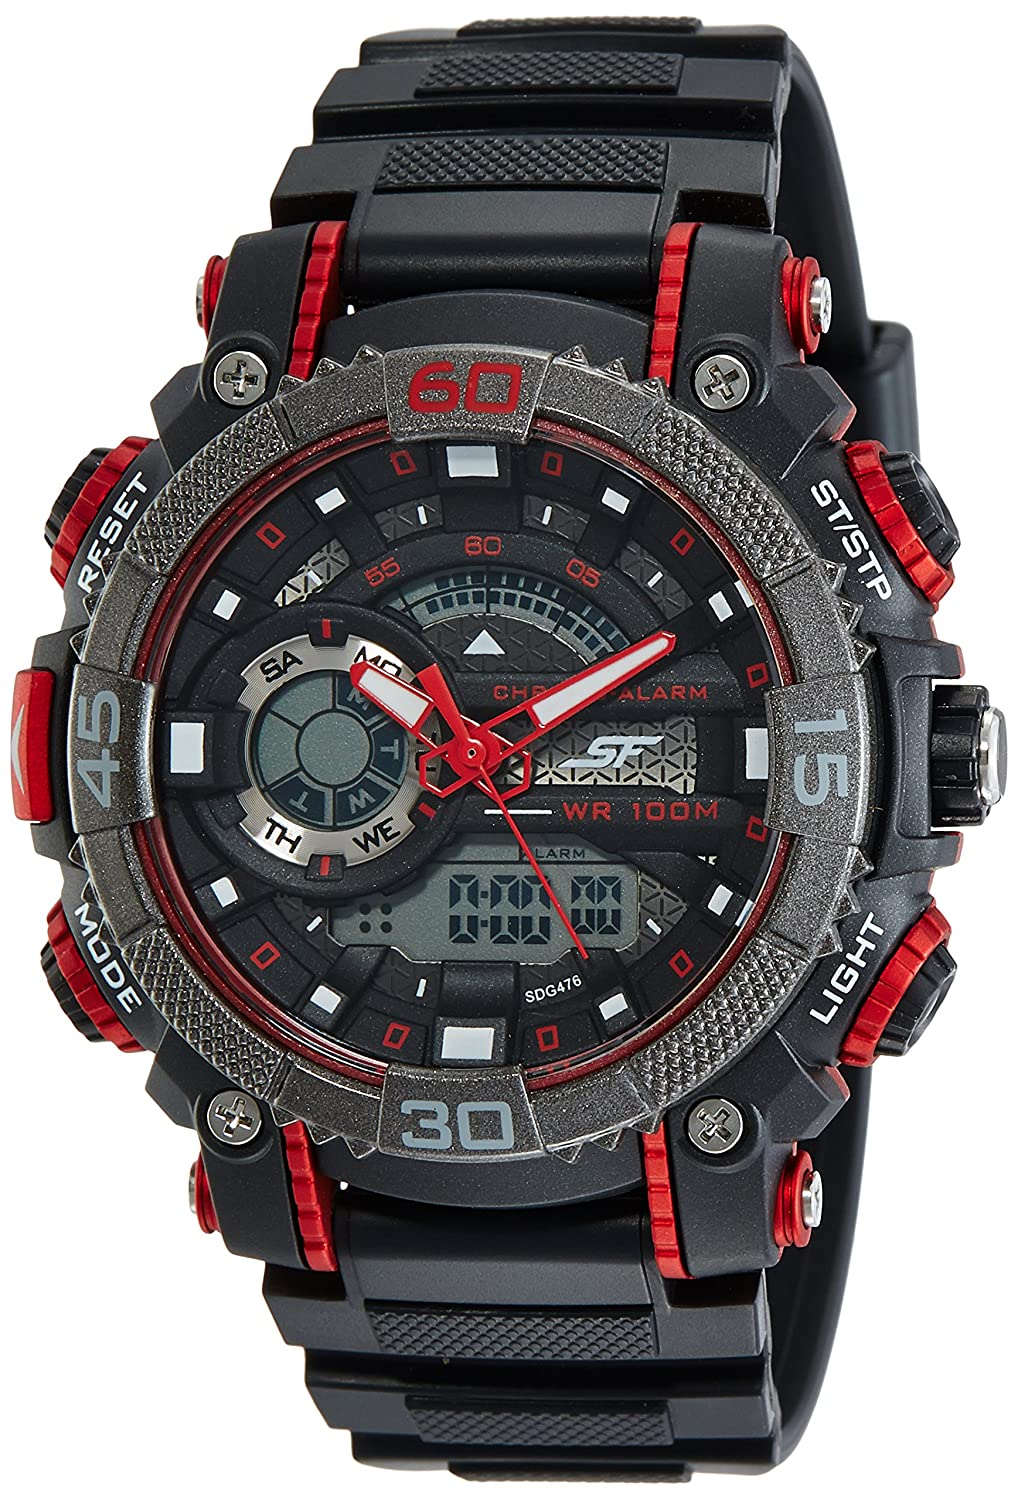 Sonata Fibre (SF) Digital Black Dial Best Sports Watches For Men to Buy Right Now in India